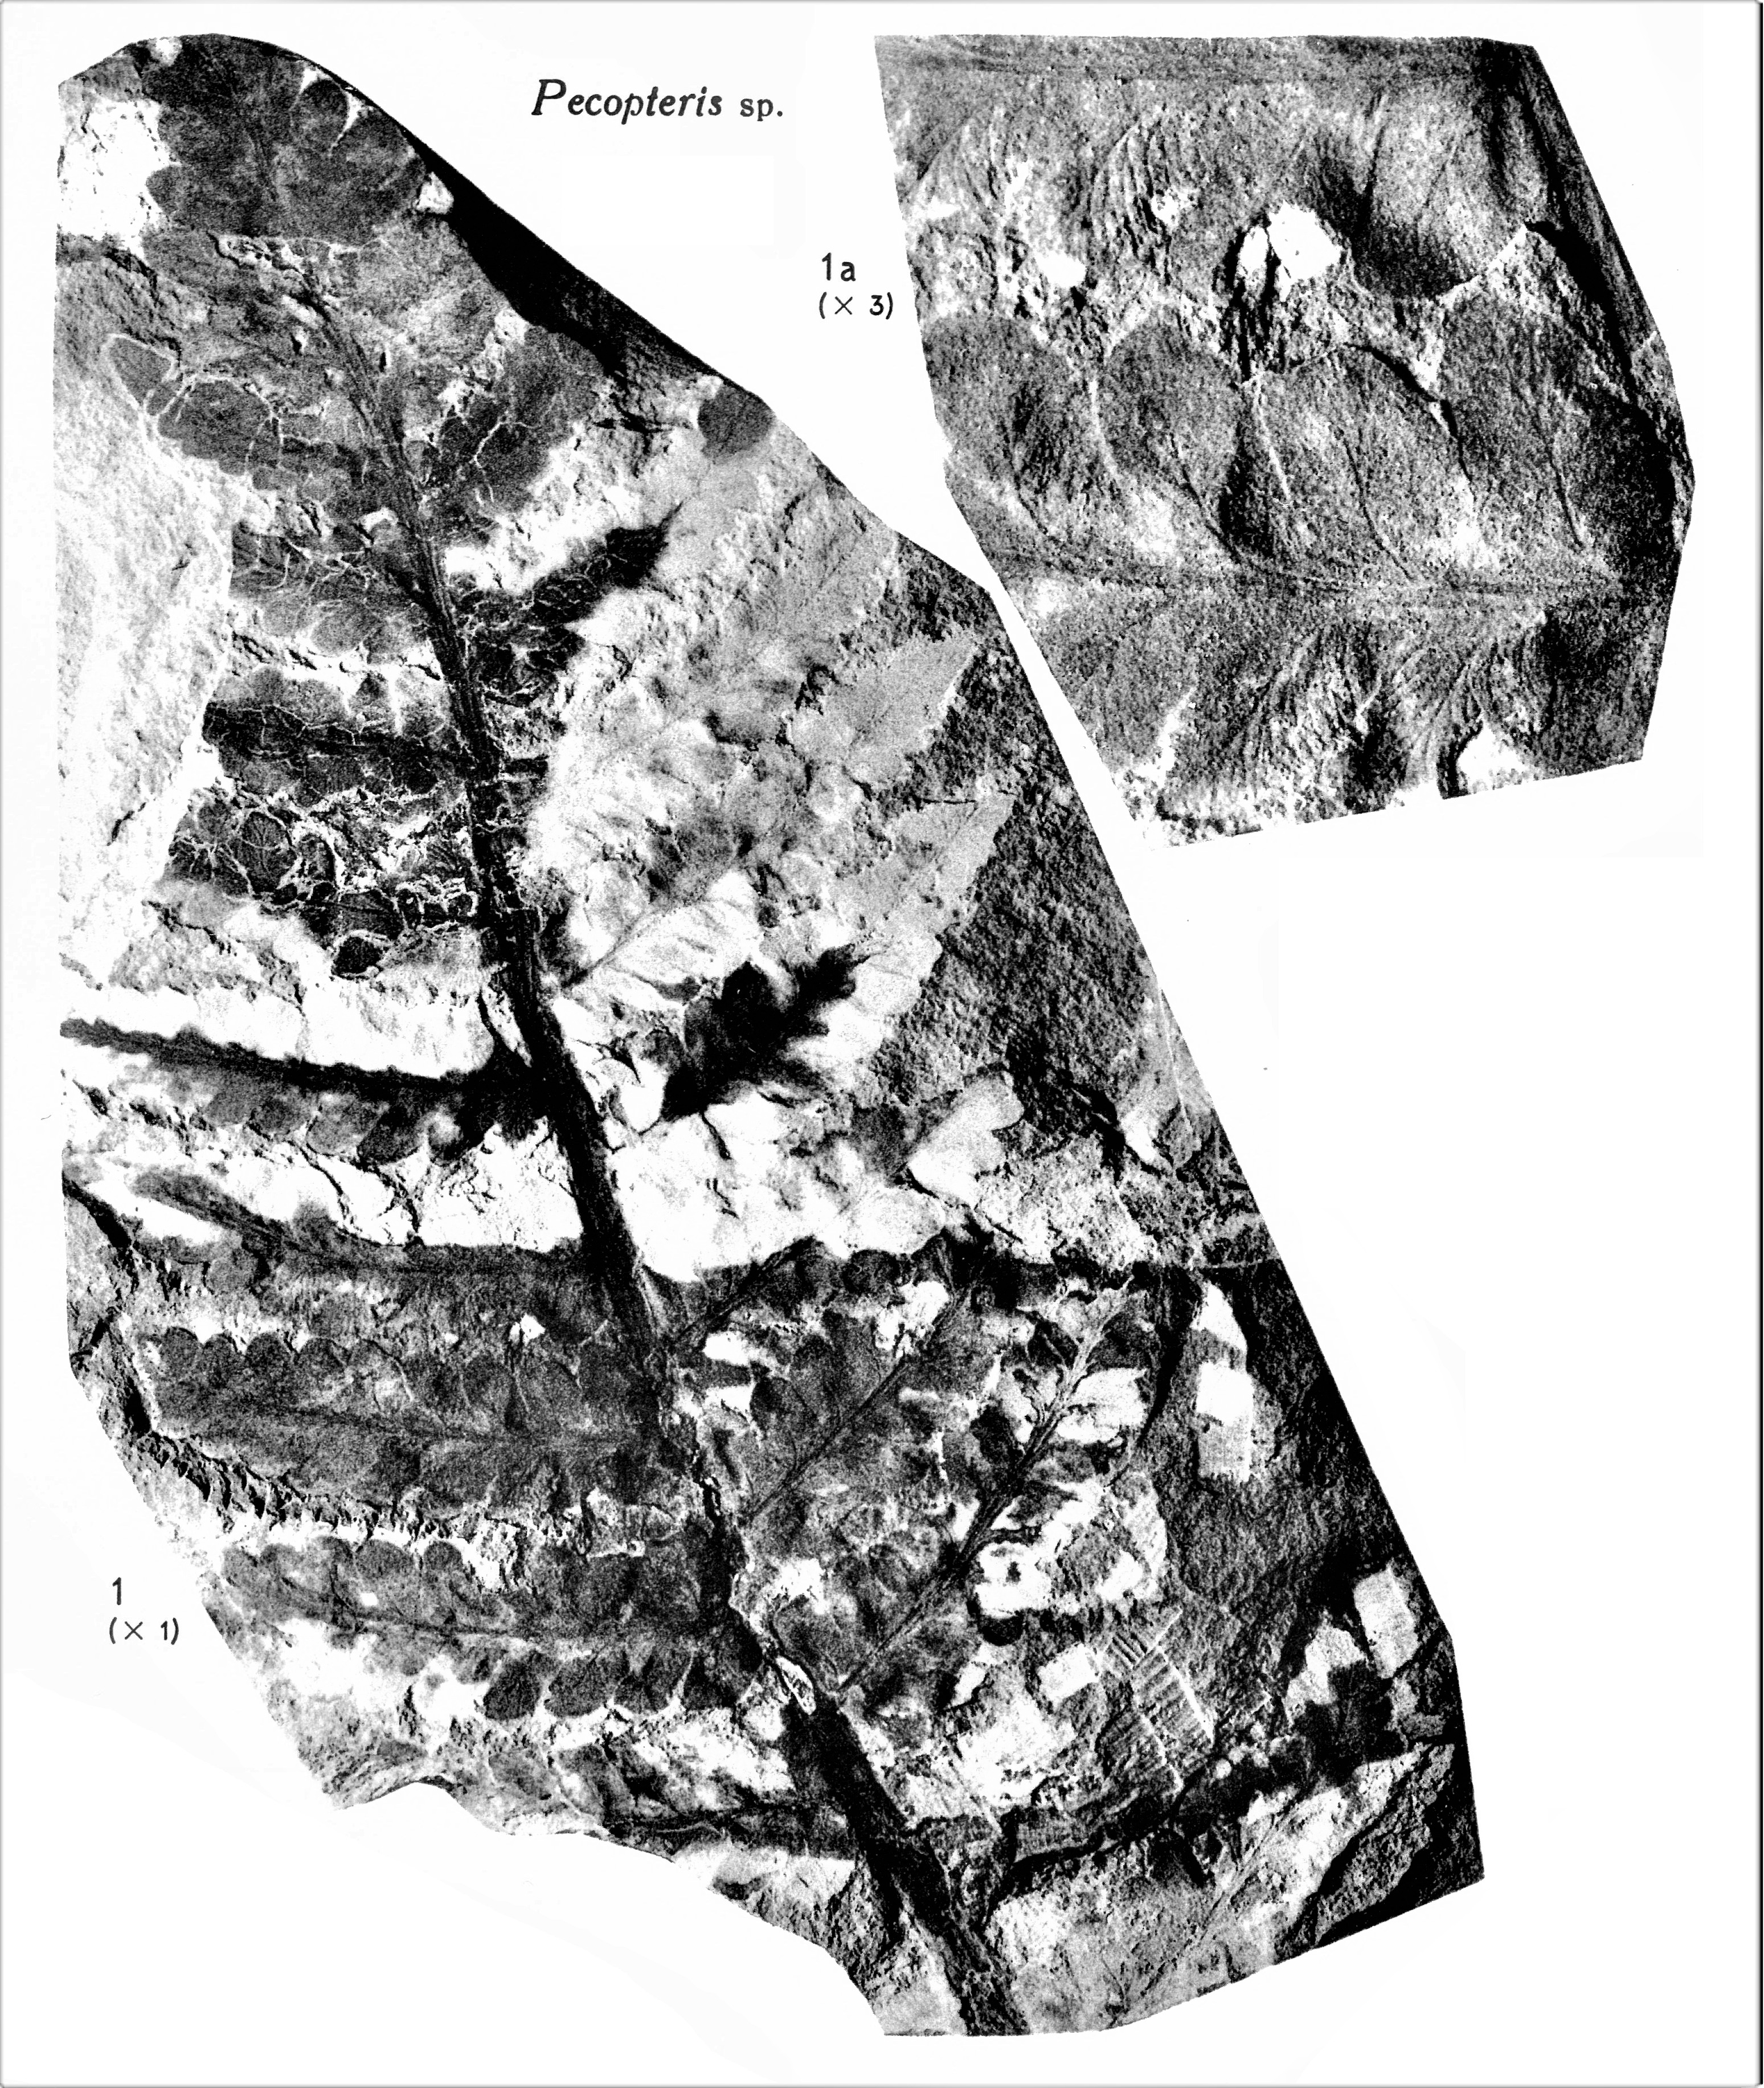 Pl. XII ; Fig 1, 1a